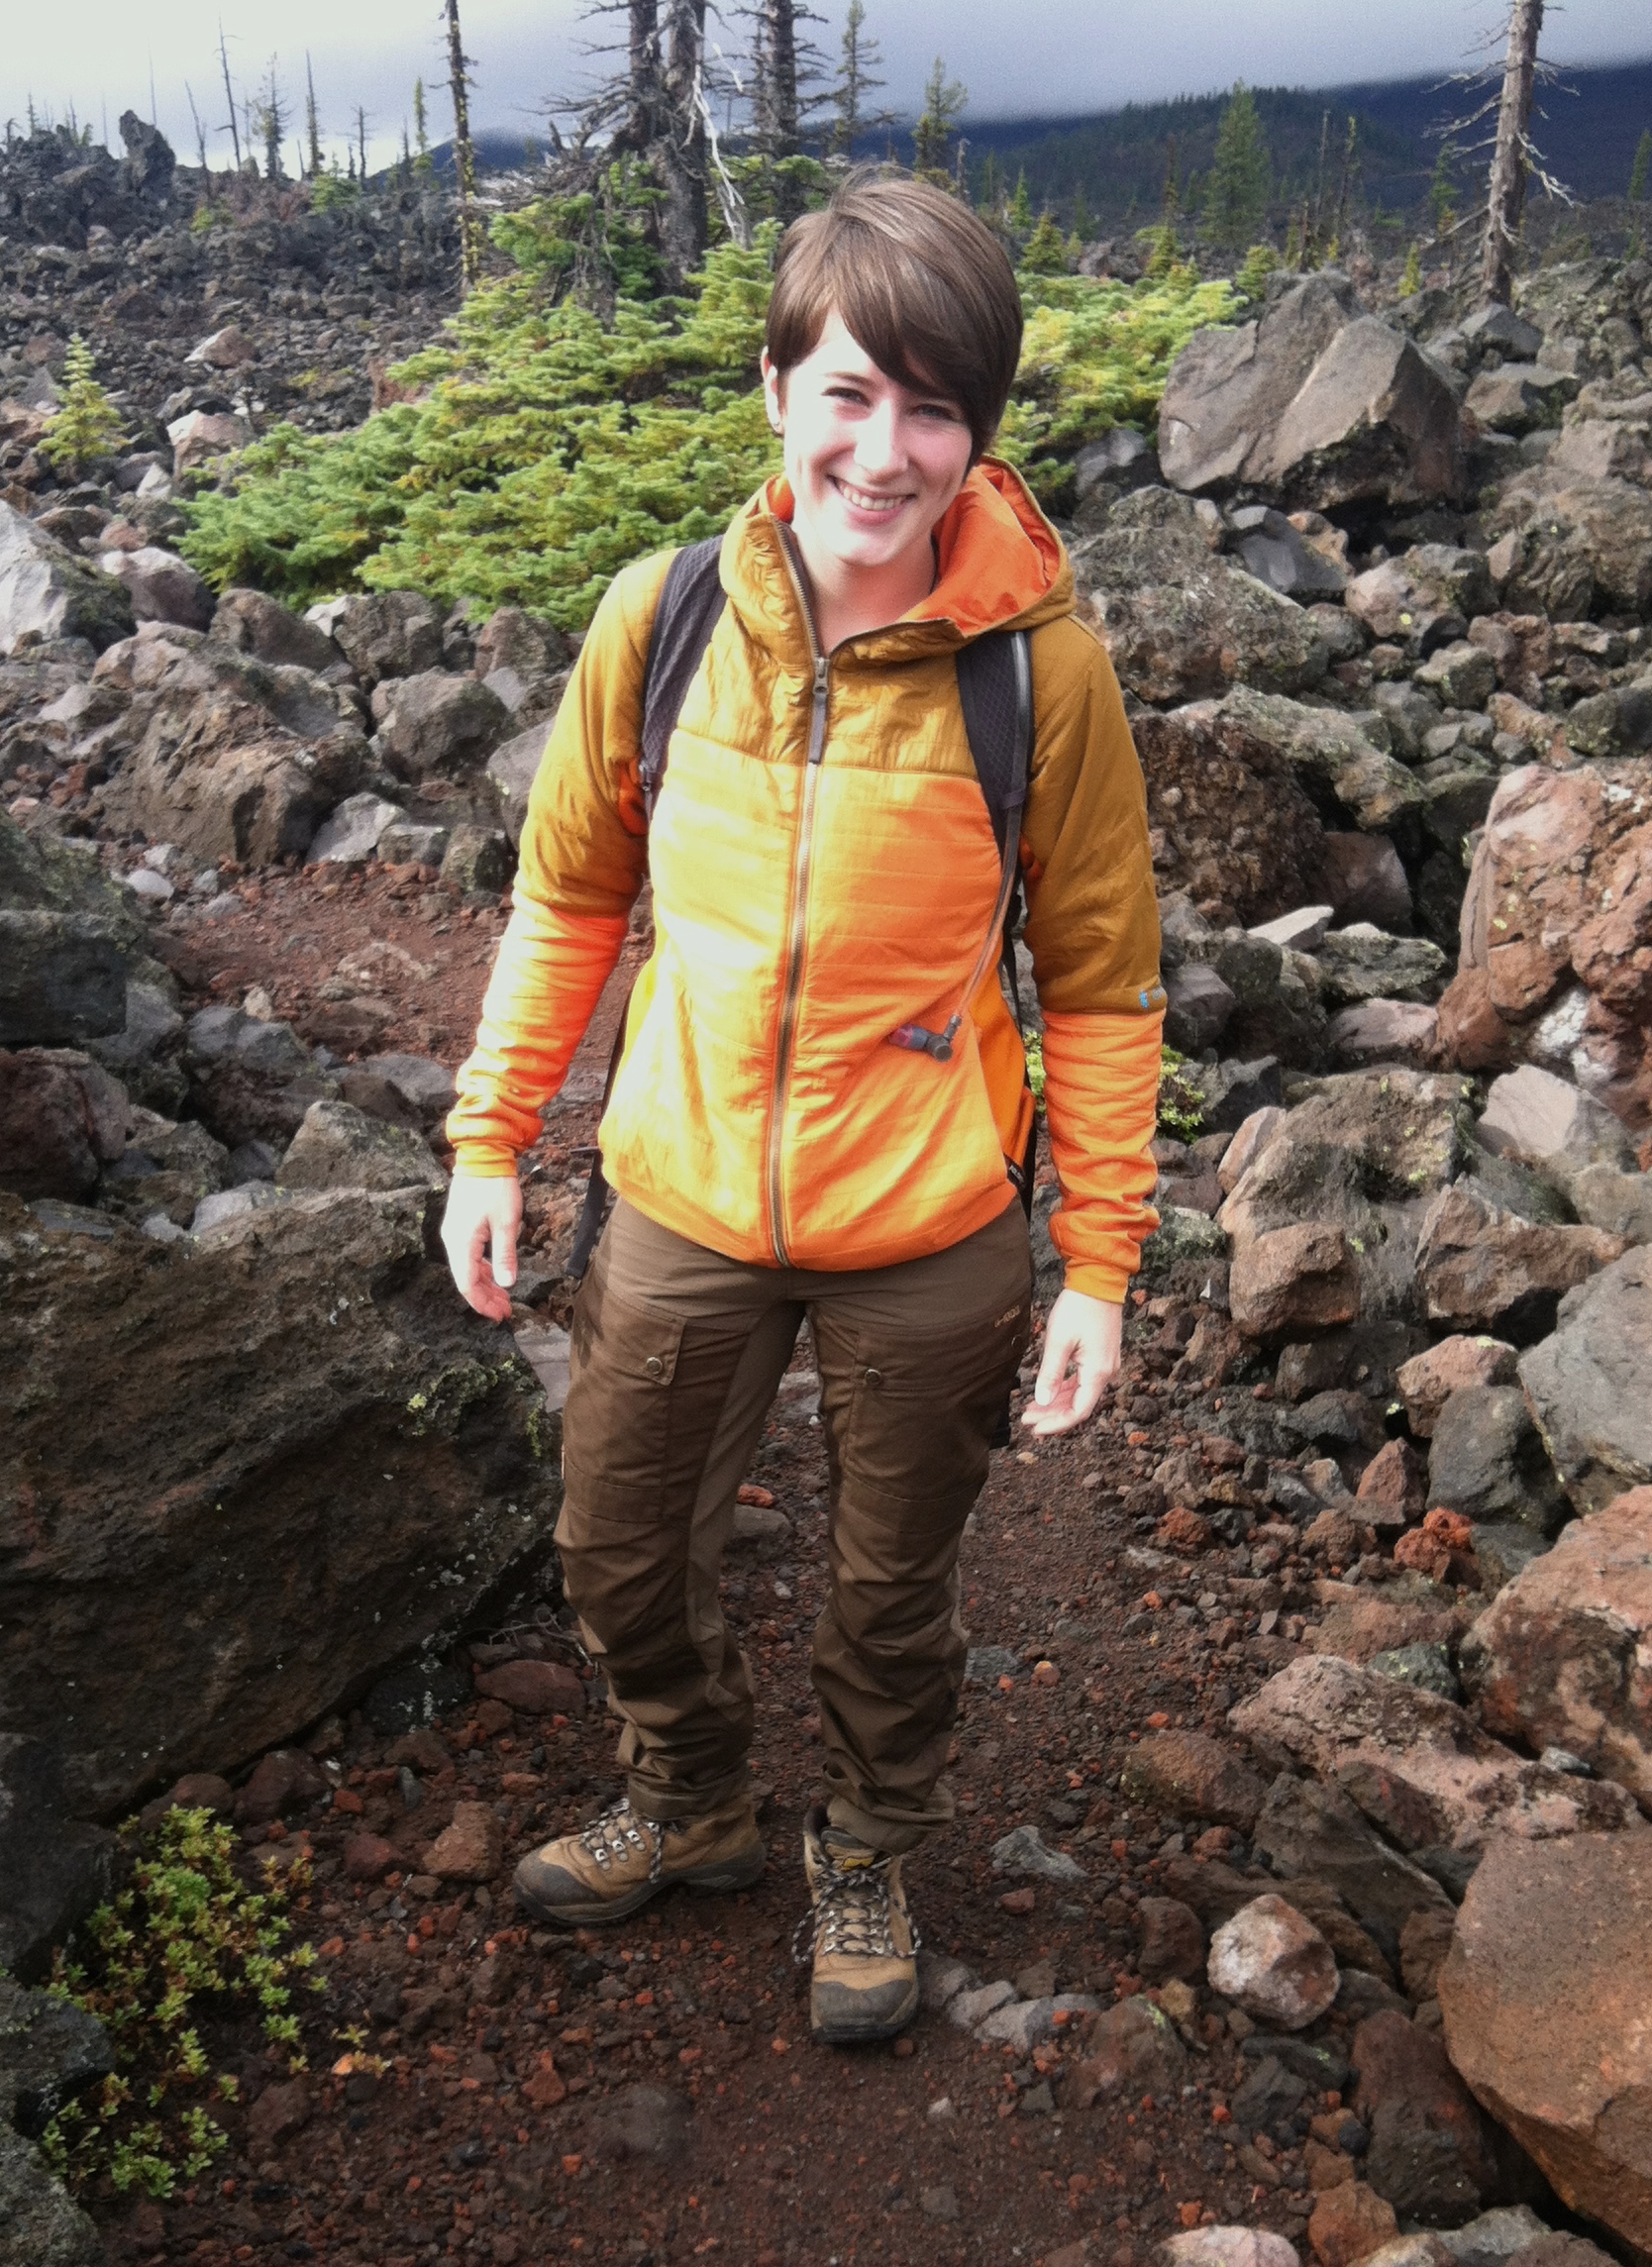 Fj 228 Llr 228 Ven Keb Trousers Review Seattle Backpackers Magazine